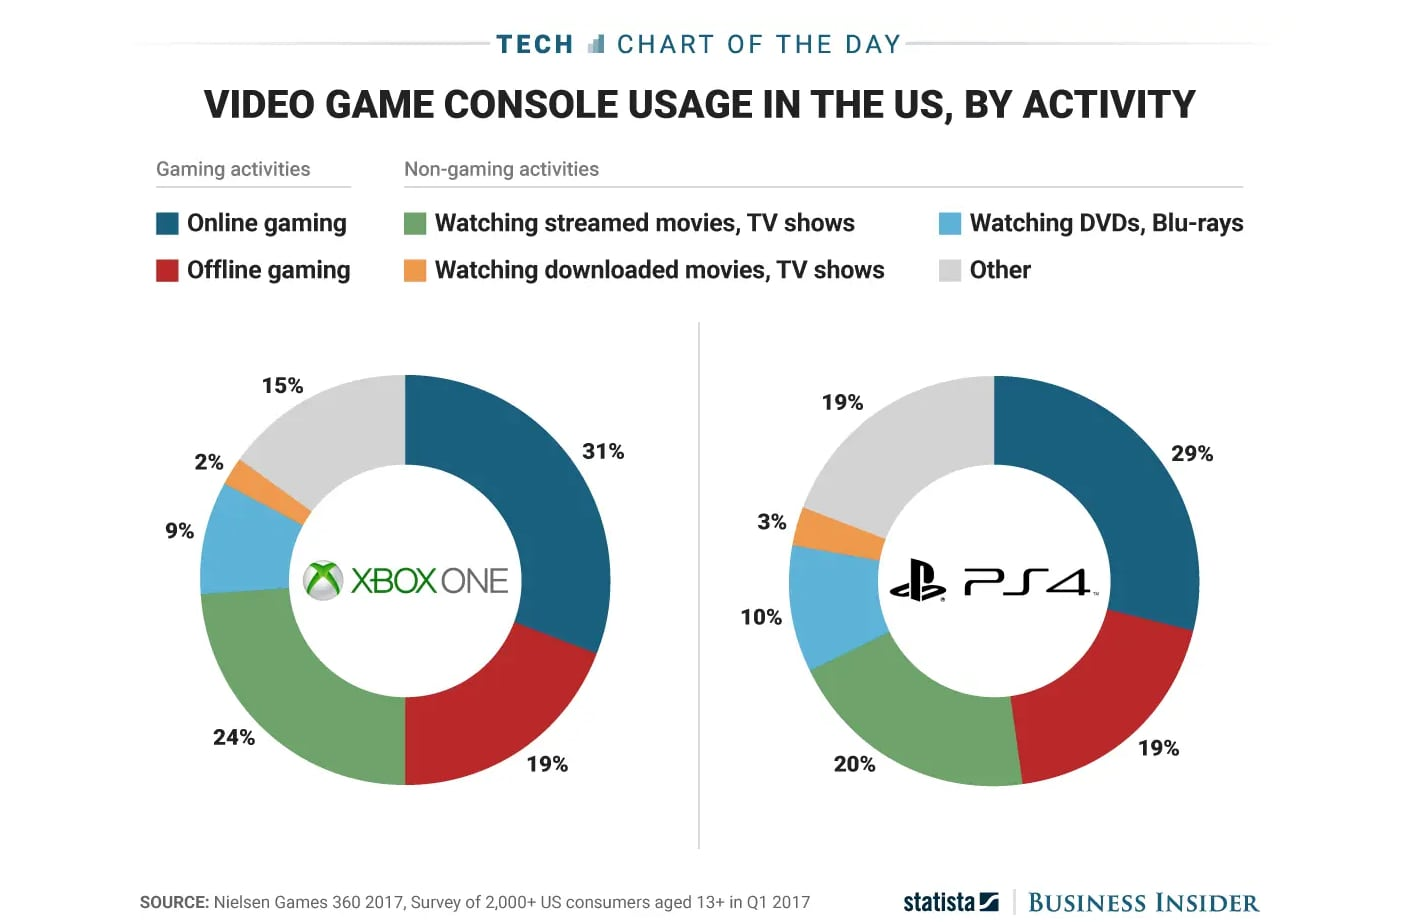 Game console usage